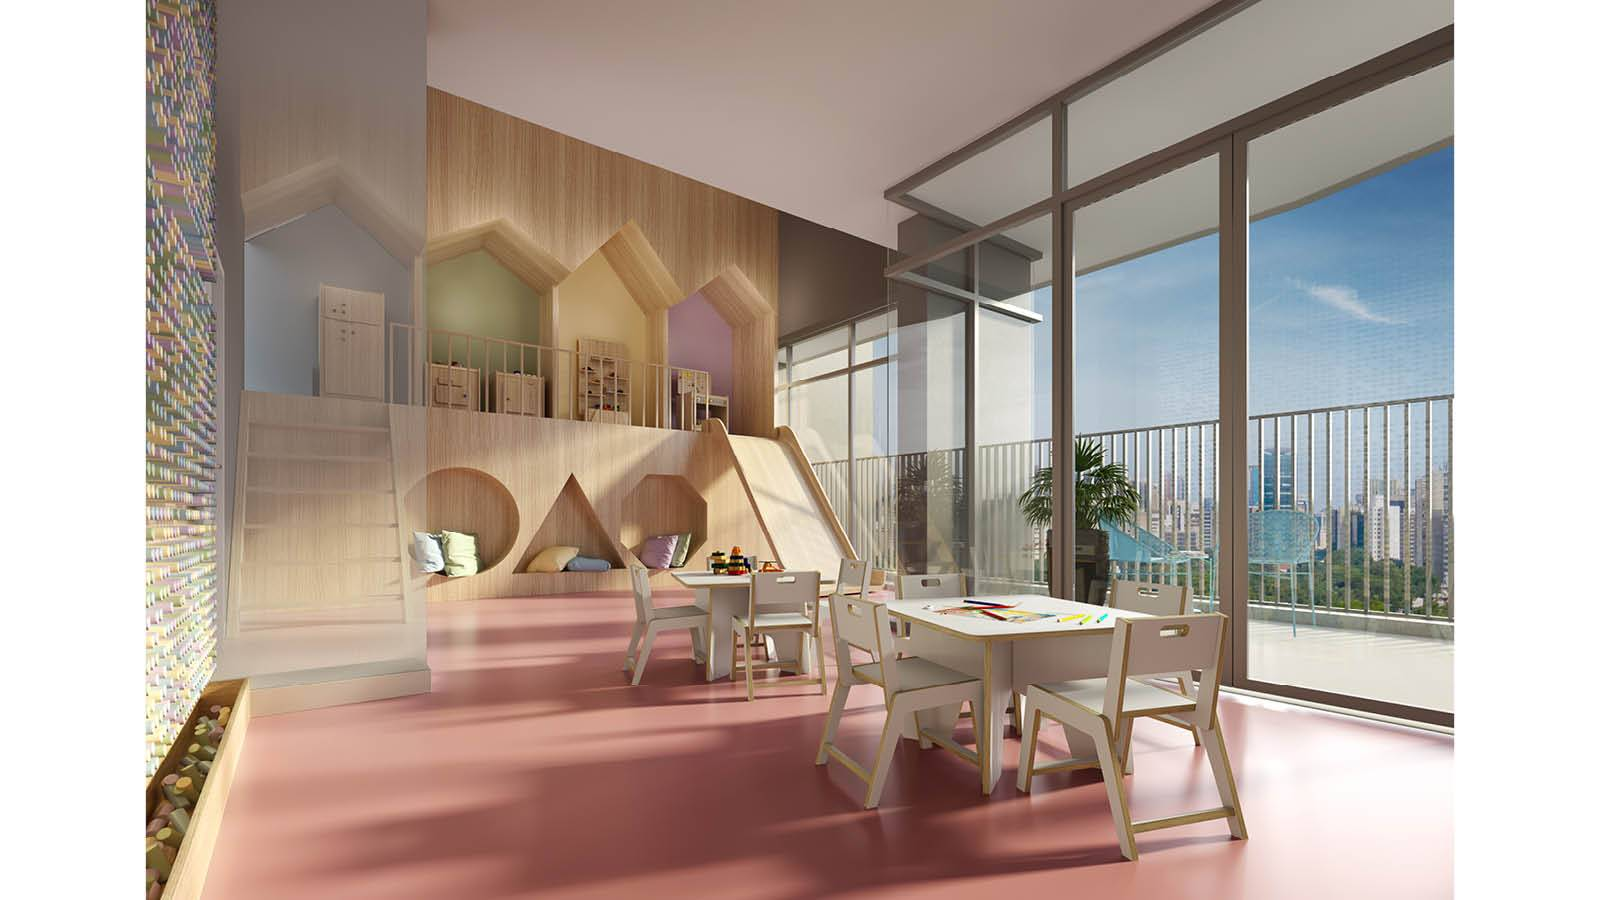 KIDS SPACE - Ventura Pinheiros - SPOL Architects